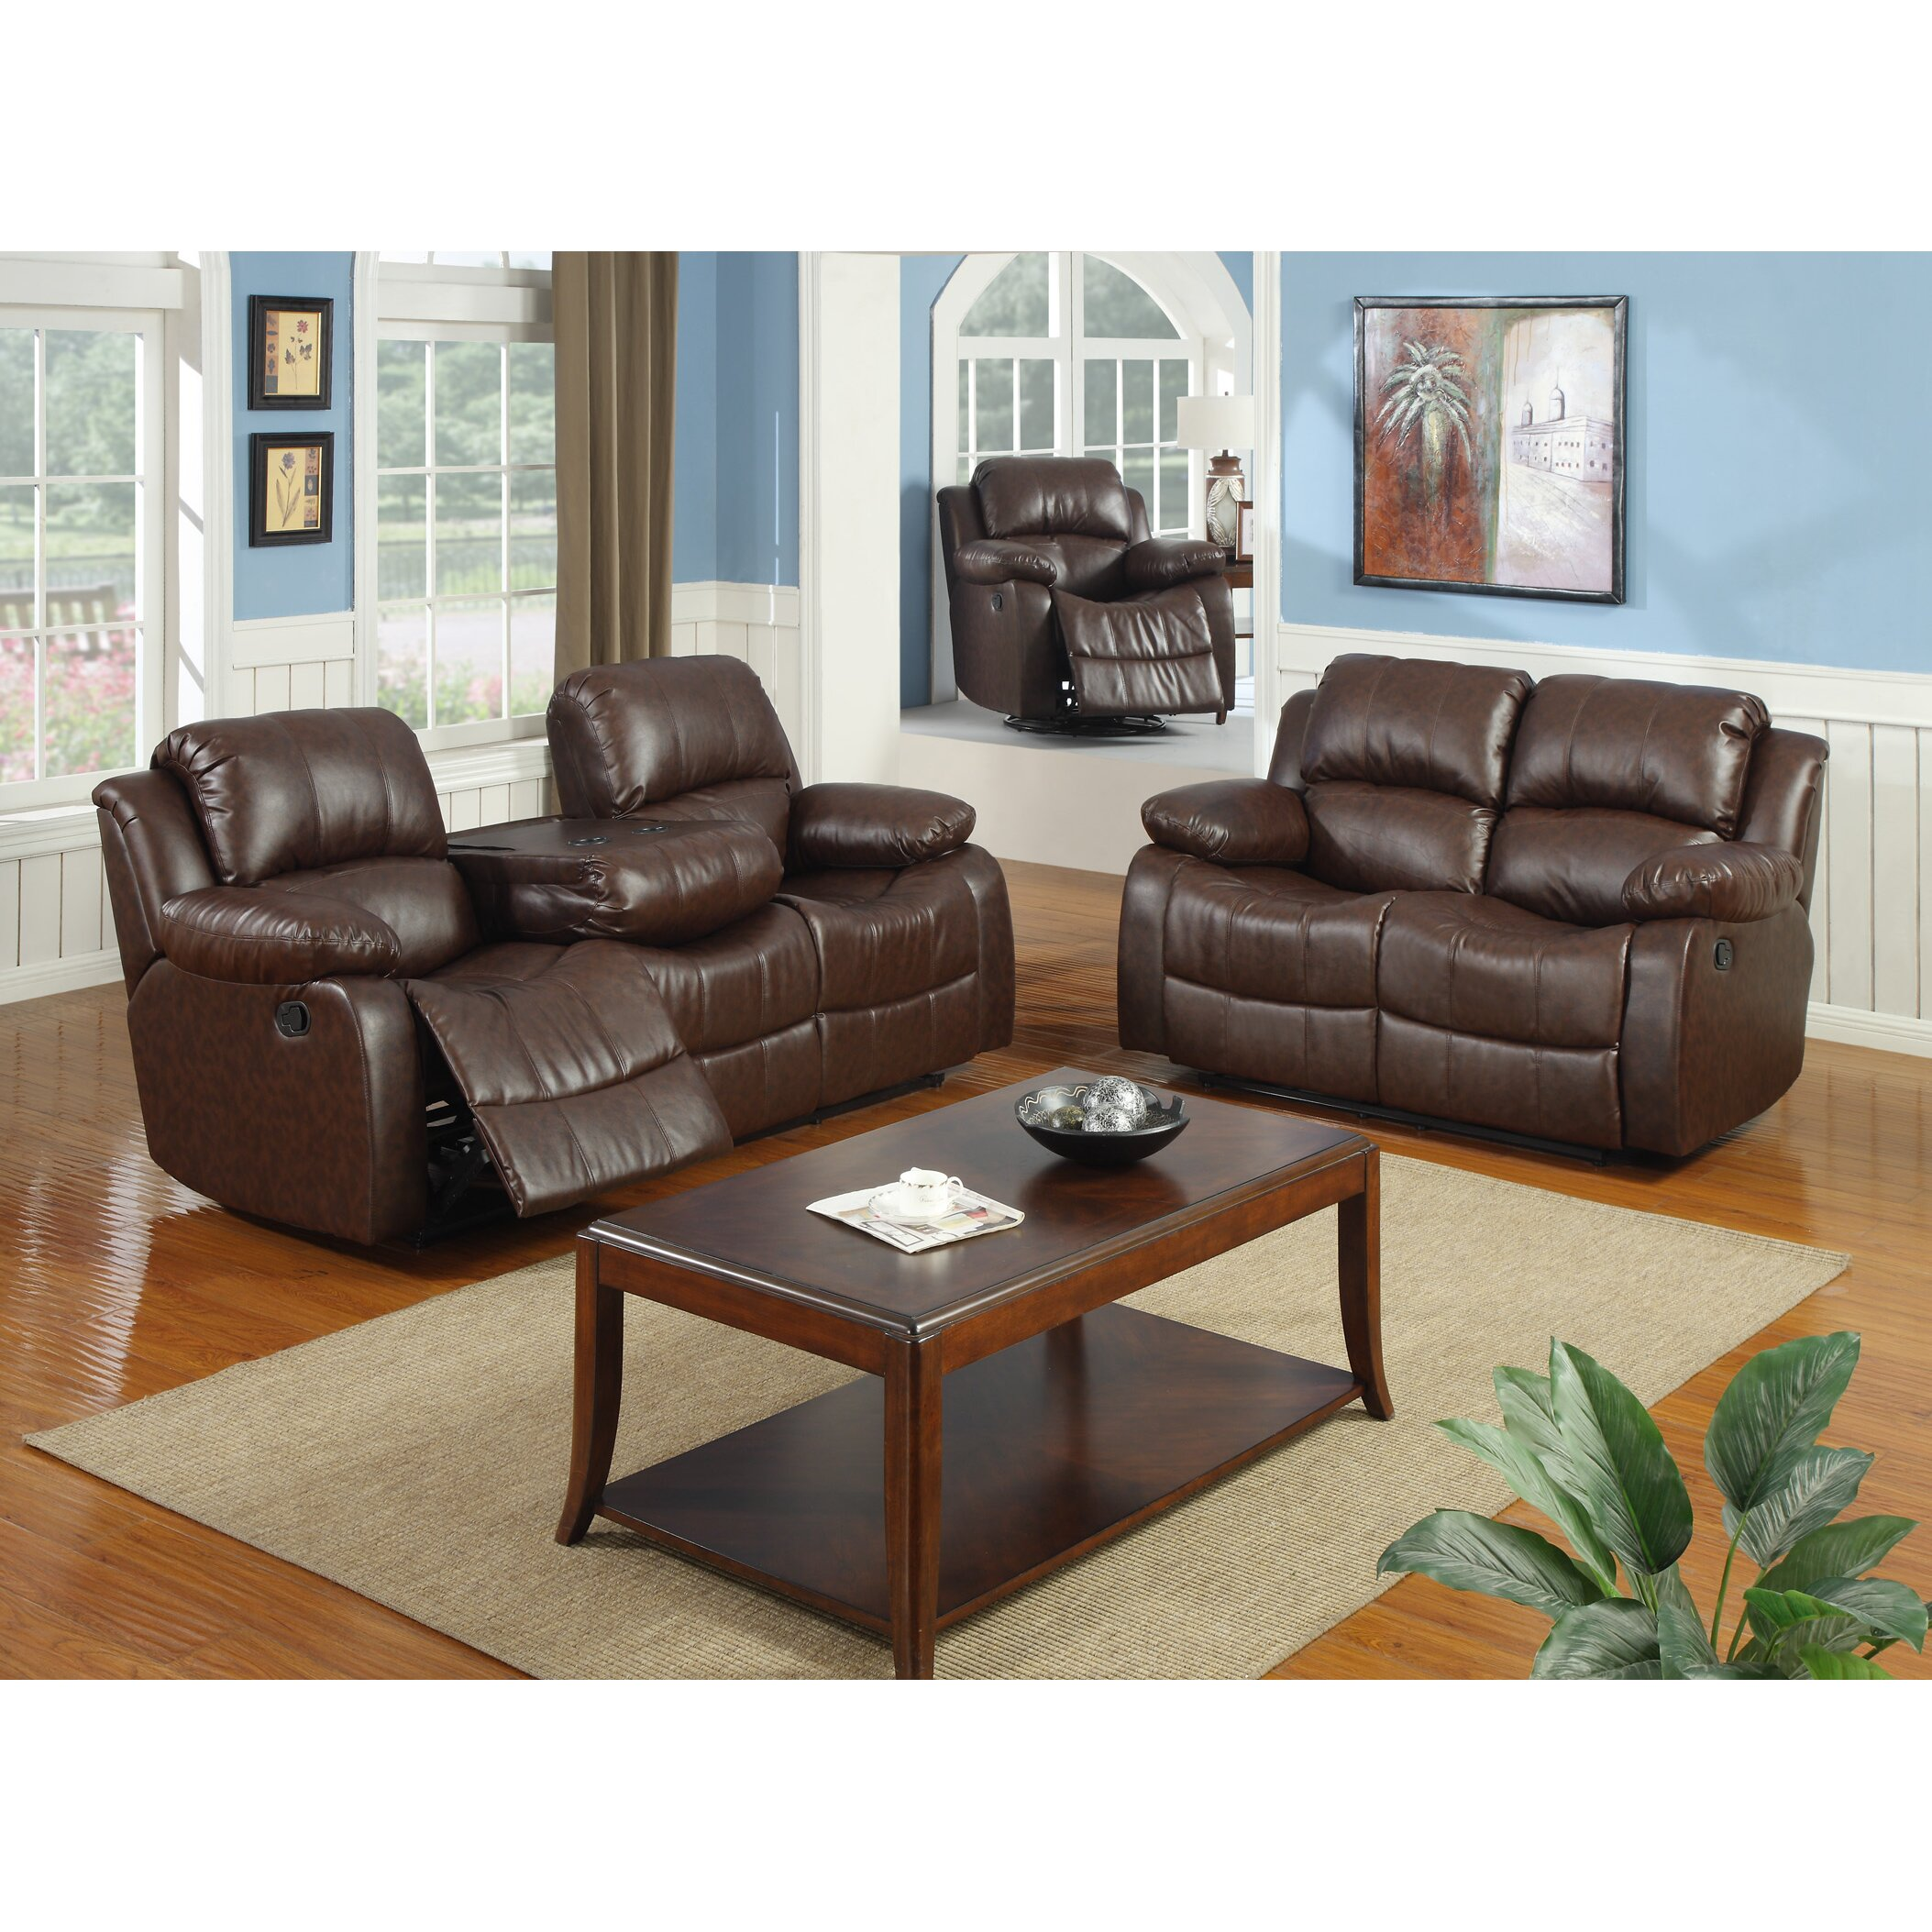 Best quality furniture bonded leather 3 piece recliner for The room furniture